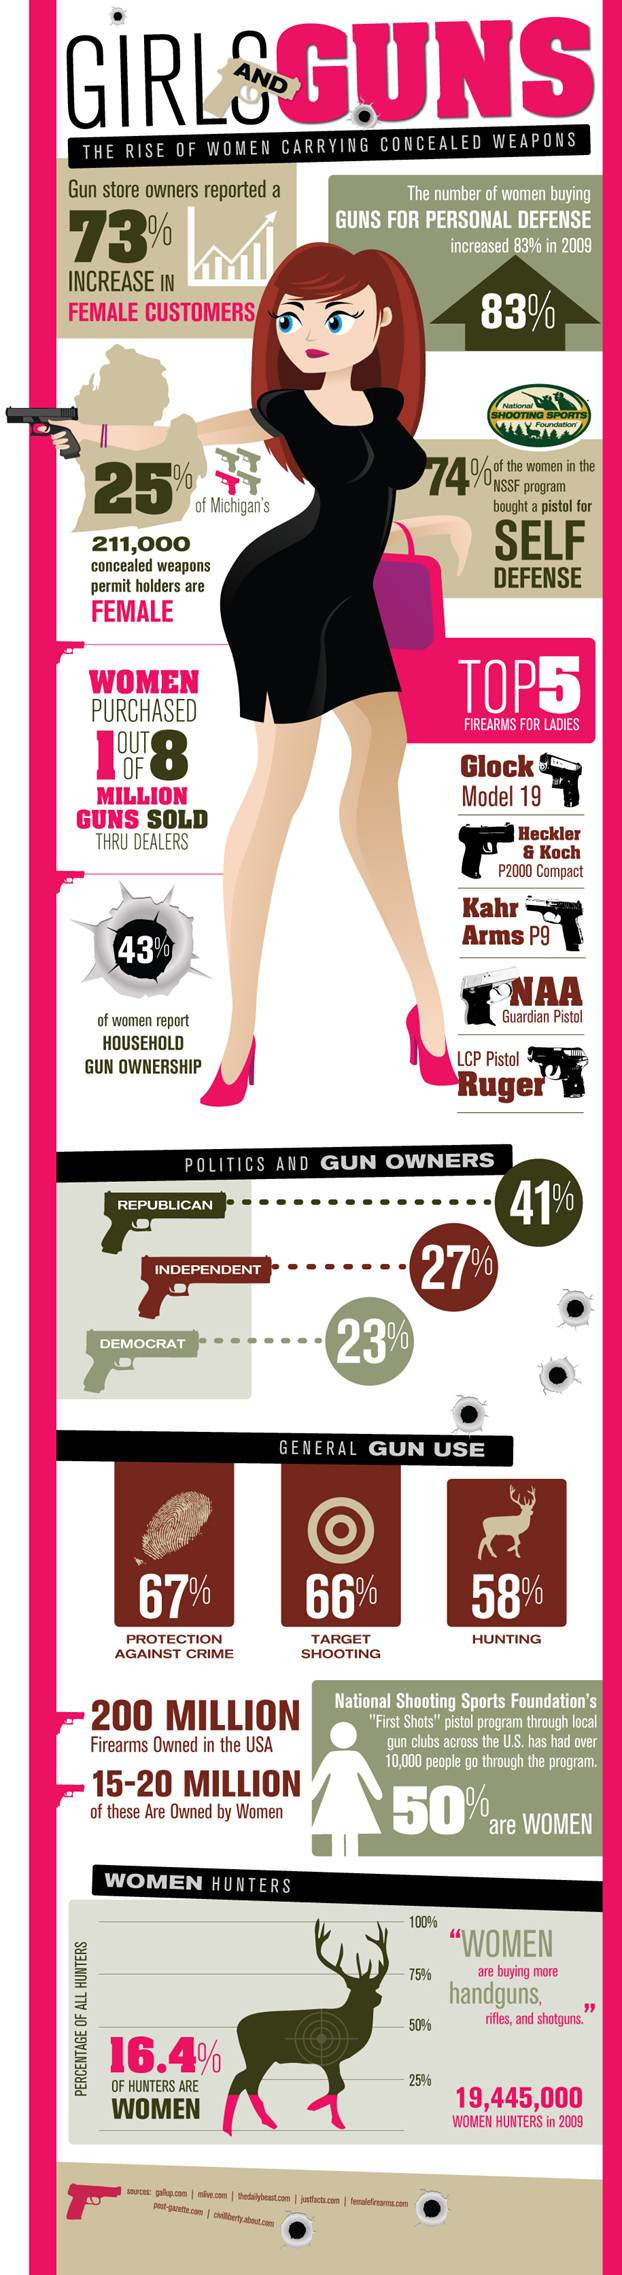 Girls and Guns the rise of women carrying concealed weapons